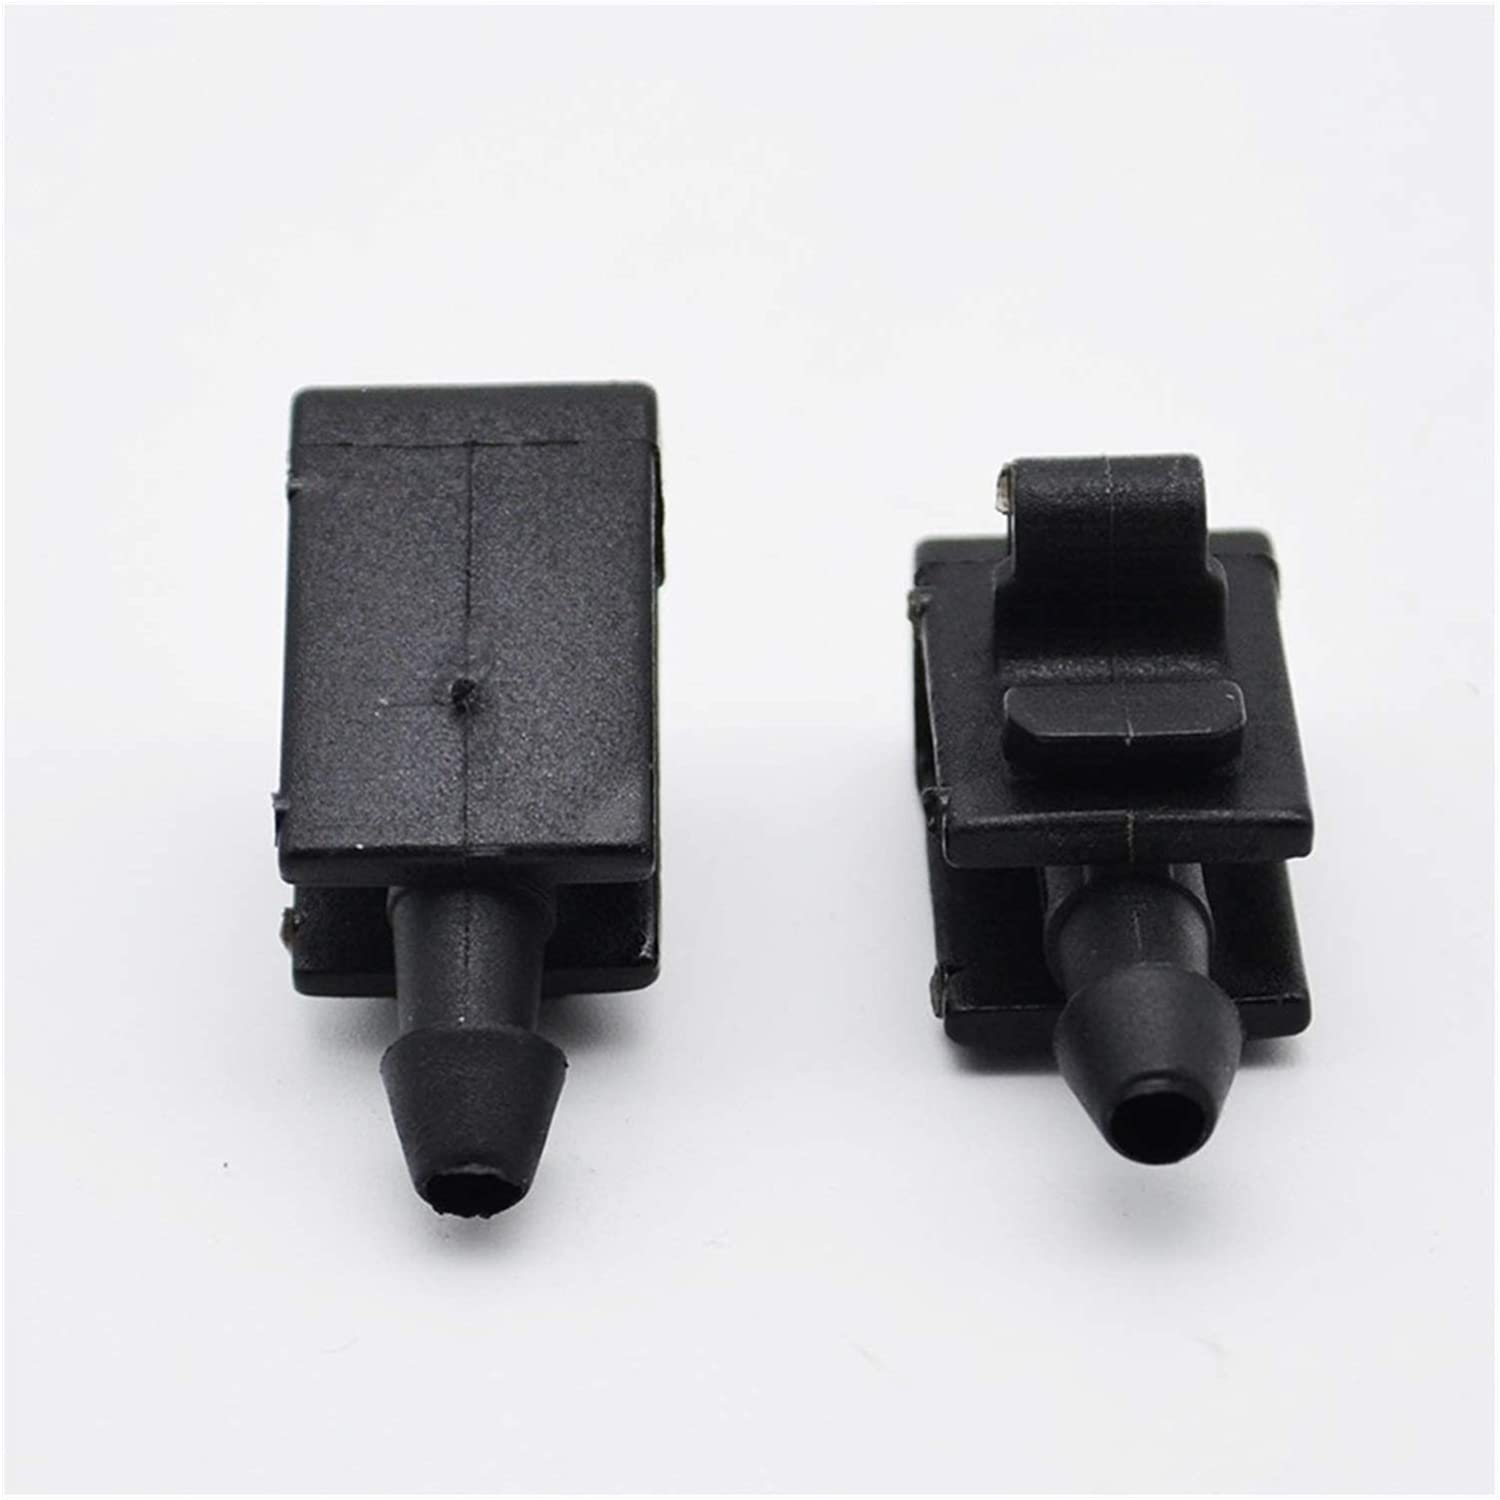 Megane MK 2 3 2003 2004 2005 2006 2007 2008 2009 for Windshield Color : Black KTSM-Stop-T Wiper Washer Water Nozzle 2Pcs//set Front Windscreen Washer Nozzle Jet For Renault Grand Scenic 2